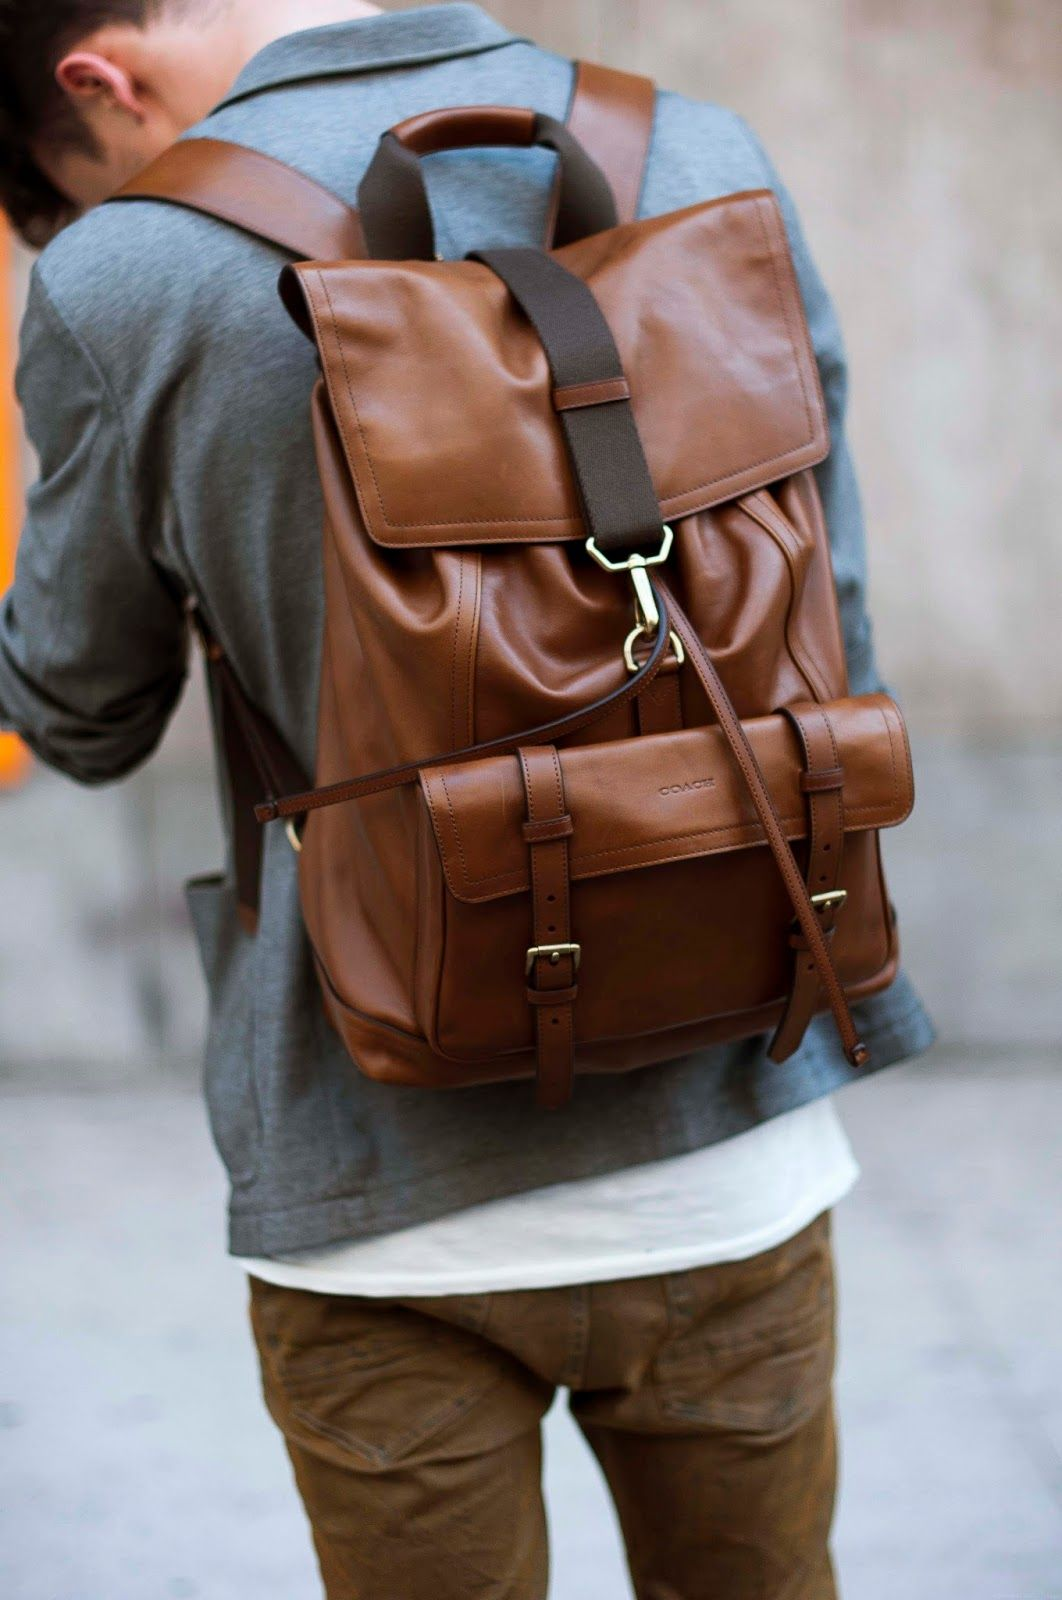 Mans Backpack | Raddest Men's Fashion Looks On The Internet: http ...